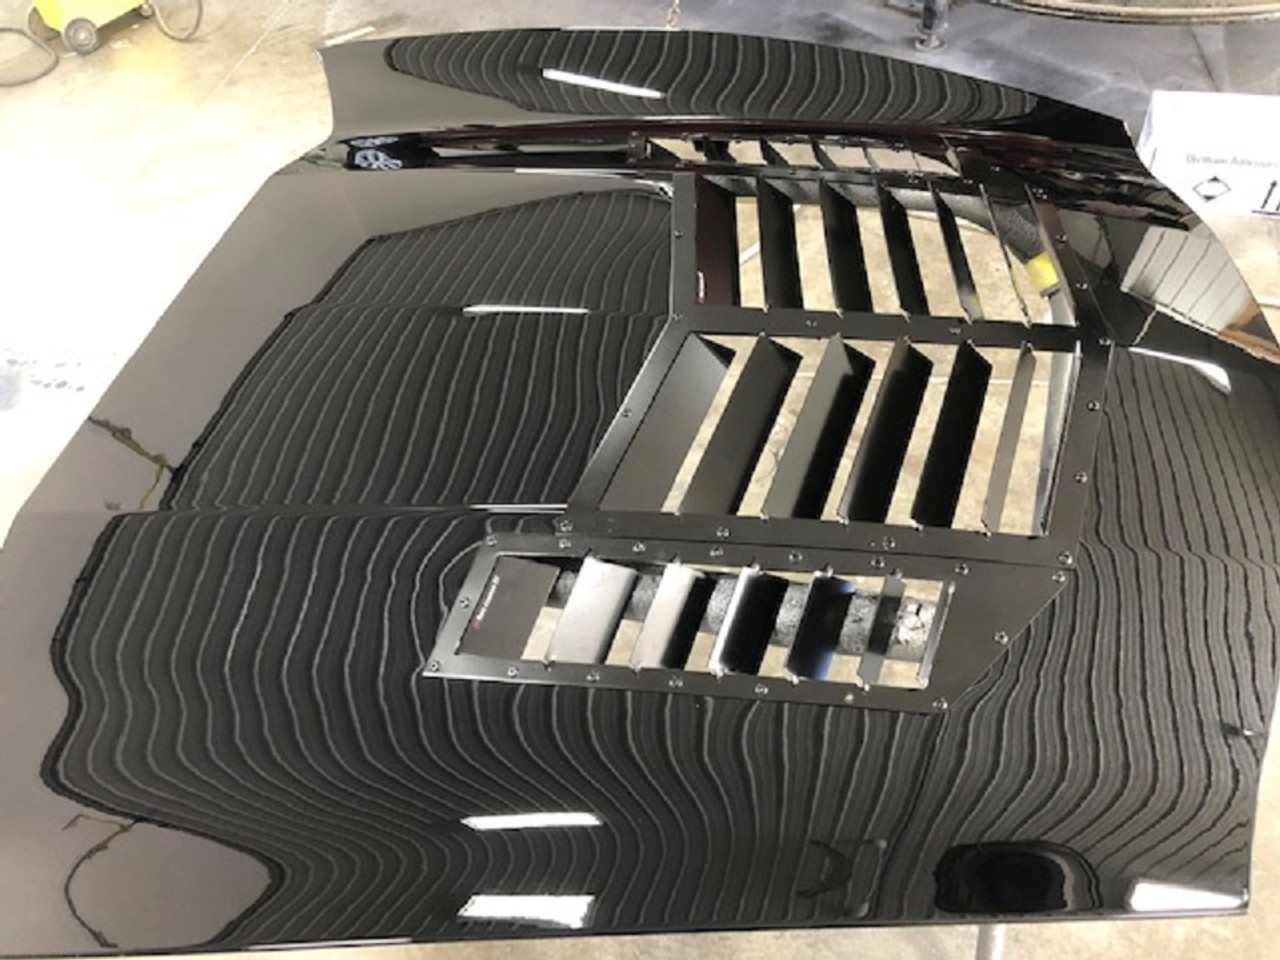 Race Louver C7 Corvette RT trim center car hood extractor is designed for street, high performance driving and track duty.